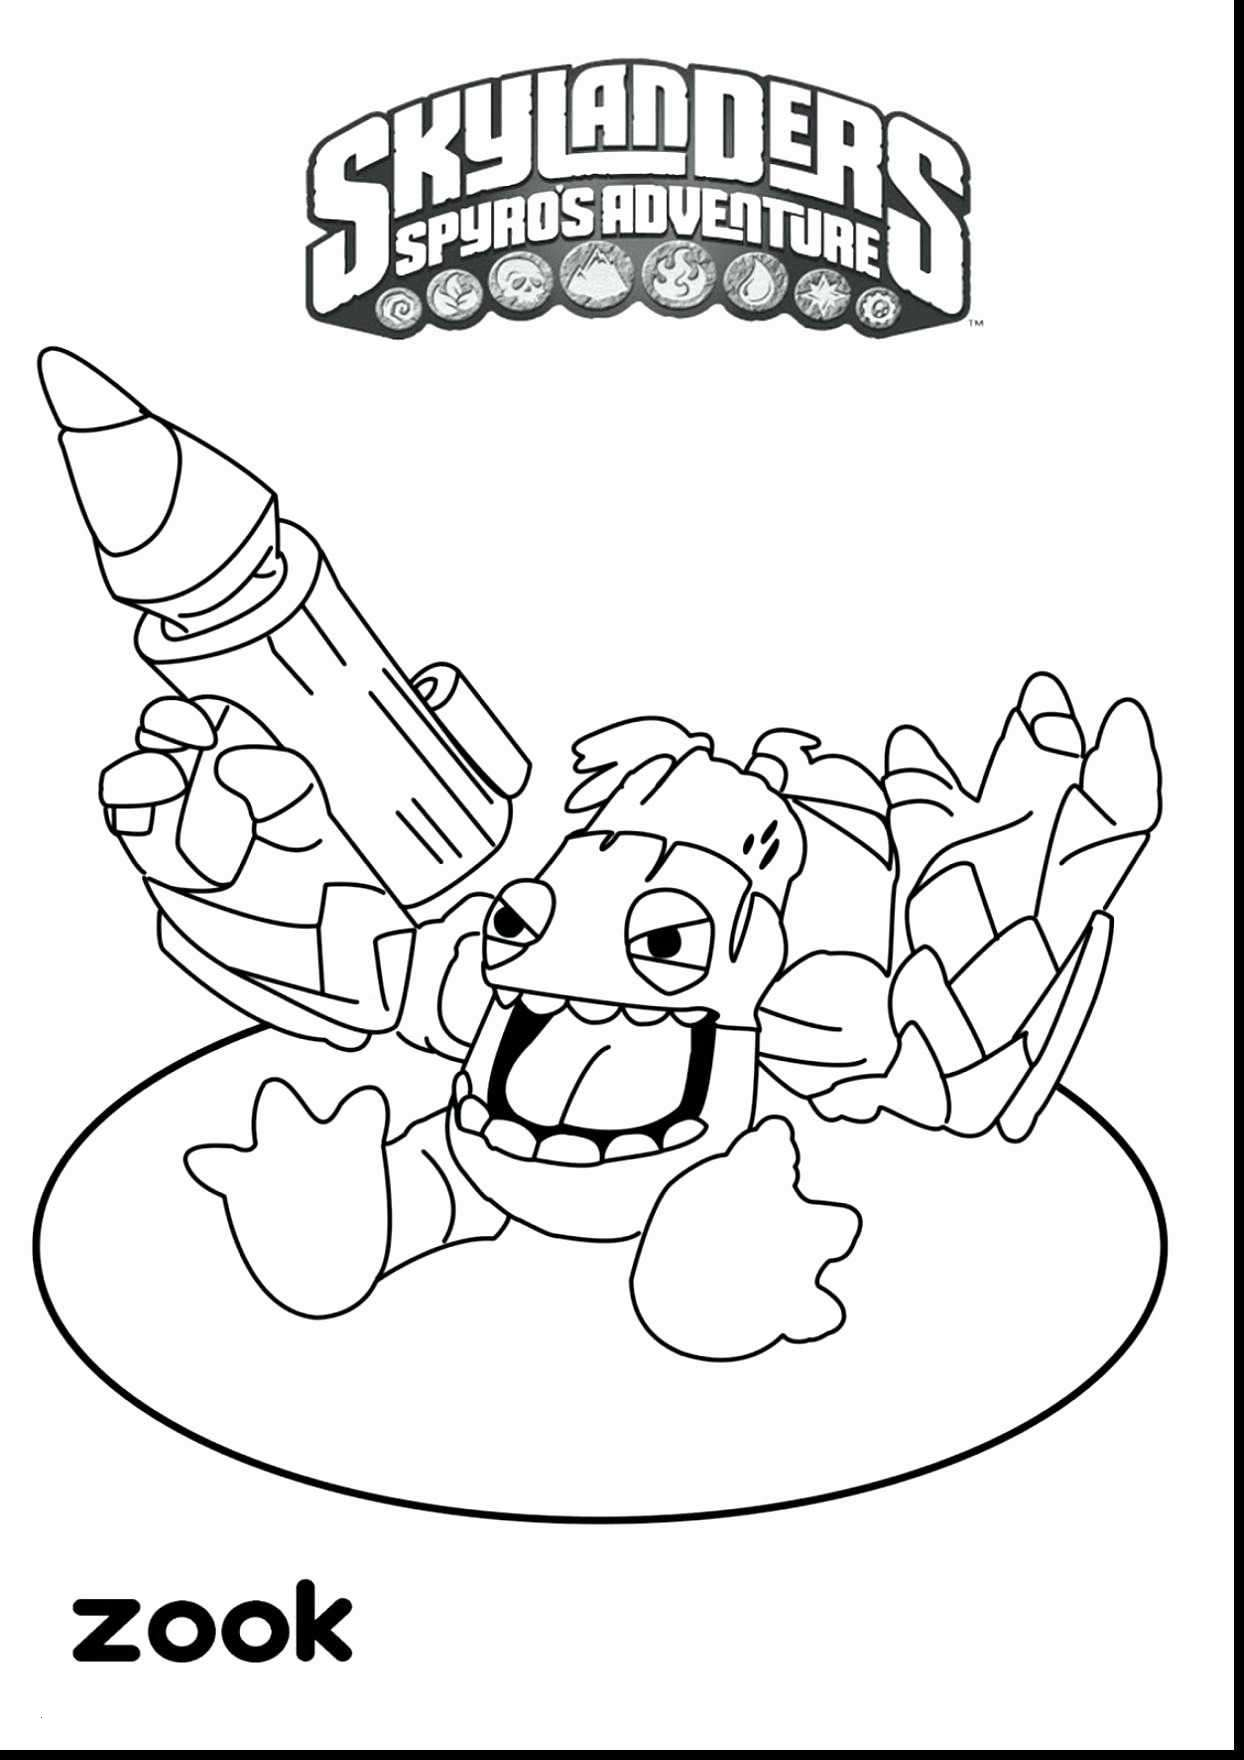 Christmas Elf Coloring Pages For Adults With Printable Elves Fresh